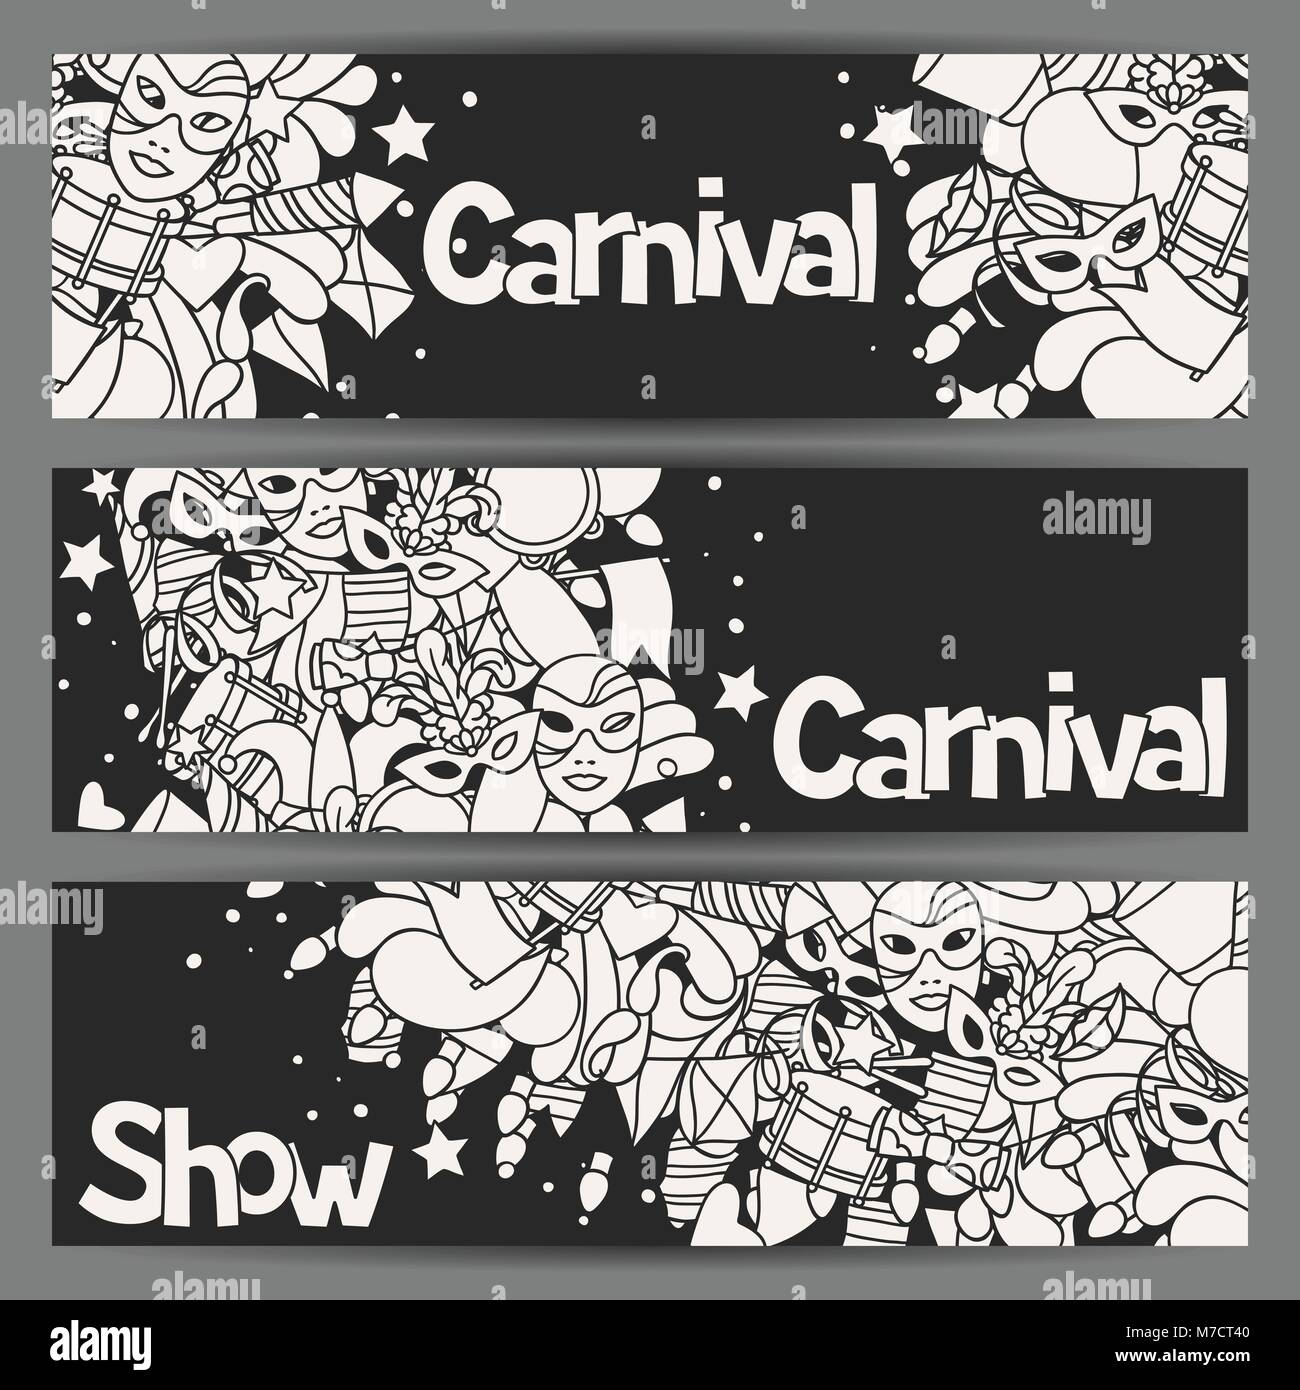 Carnival show banners with doodle icons and objects Stock Vector Art